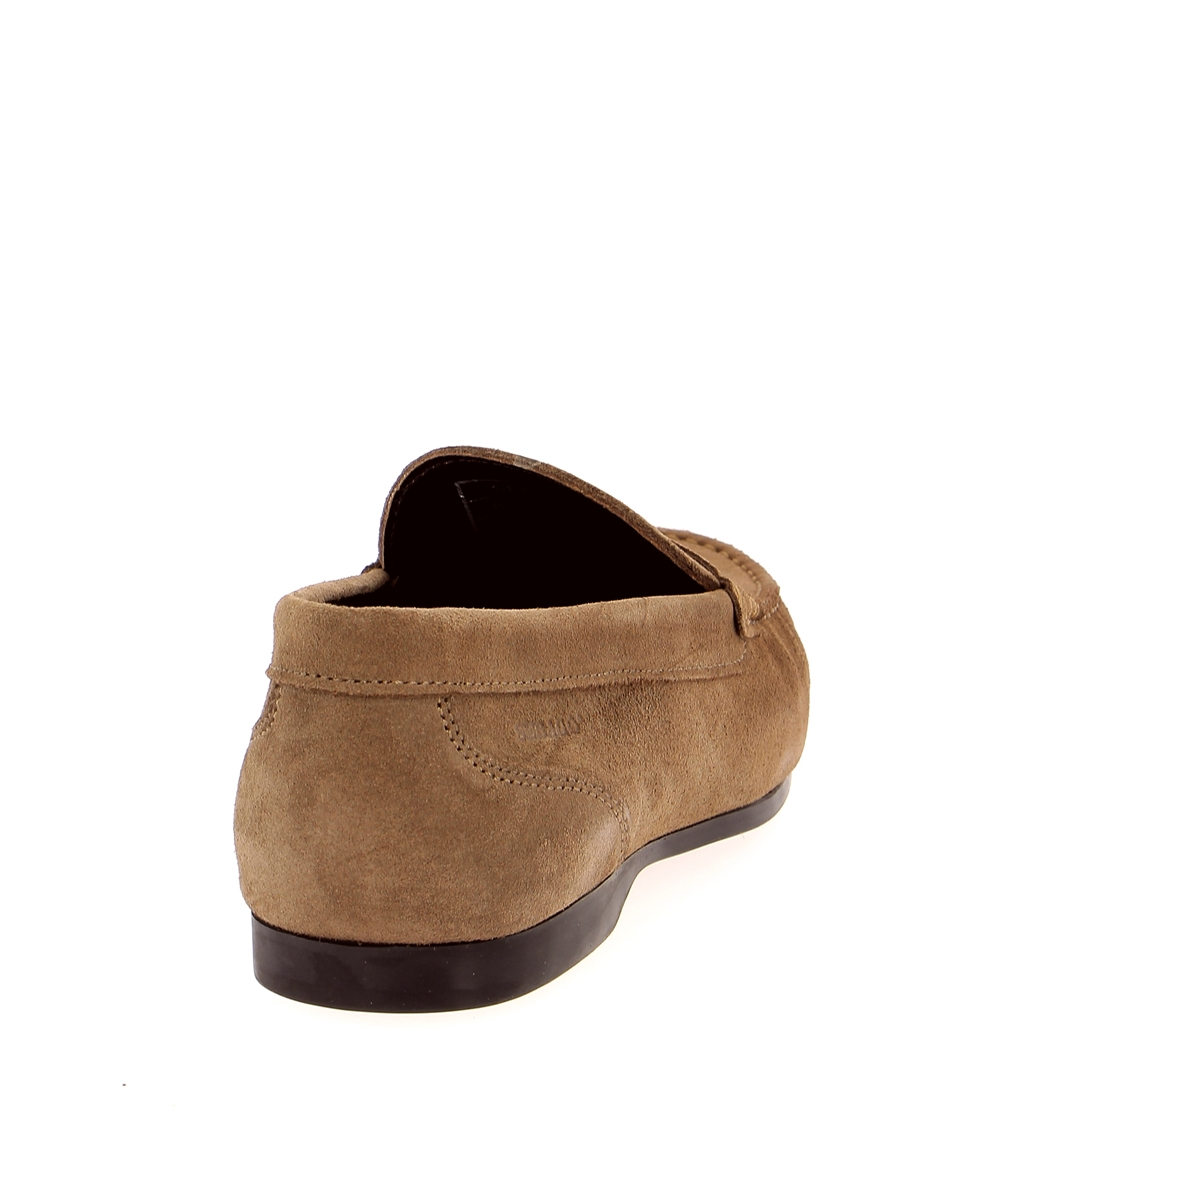 Sebago Instappers taupe